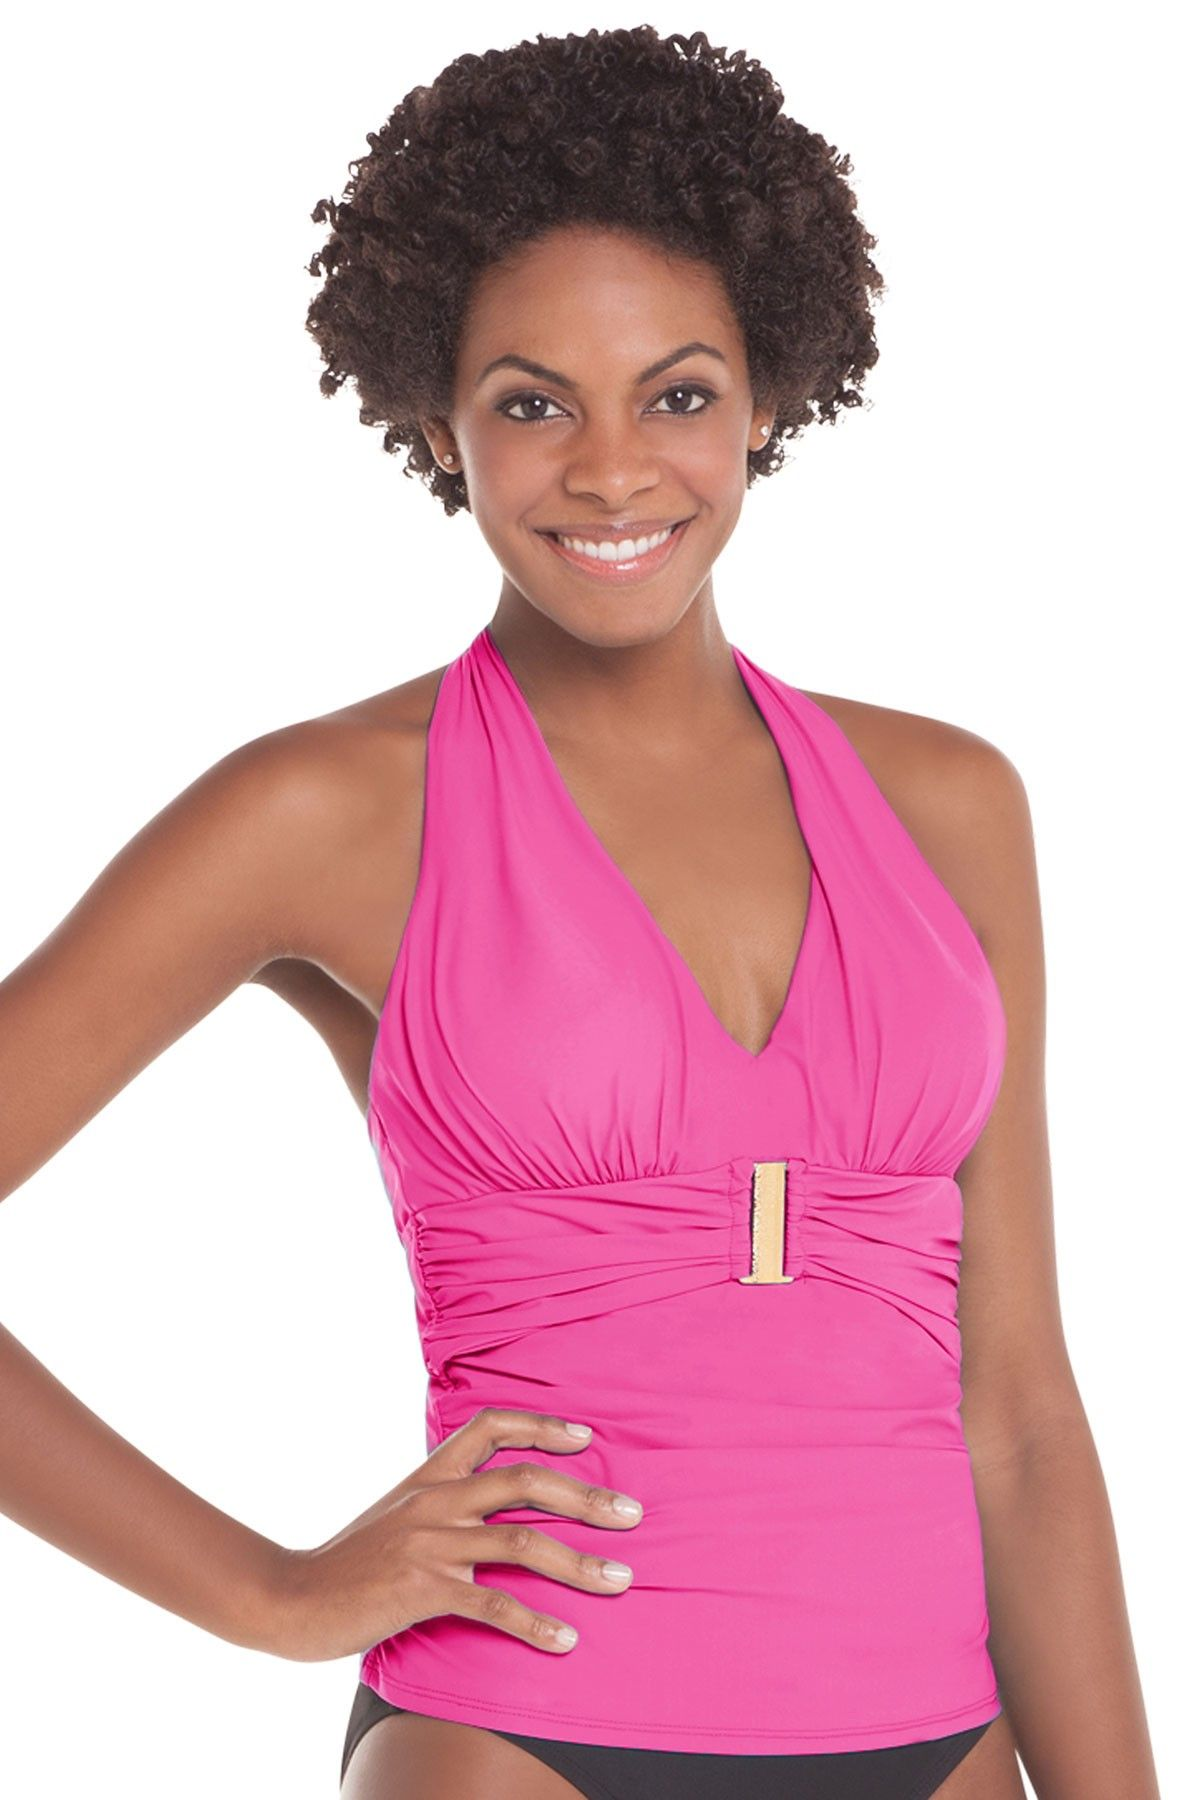 fca57b31bd109 This is the best Spanx model ever! Love her! SPANX Belted Beauty Halter  Tankini Top